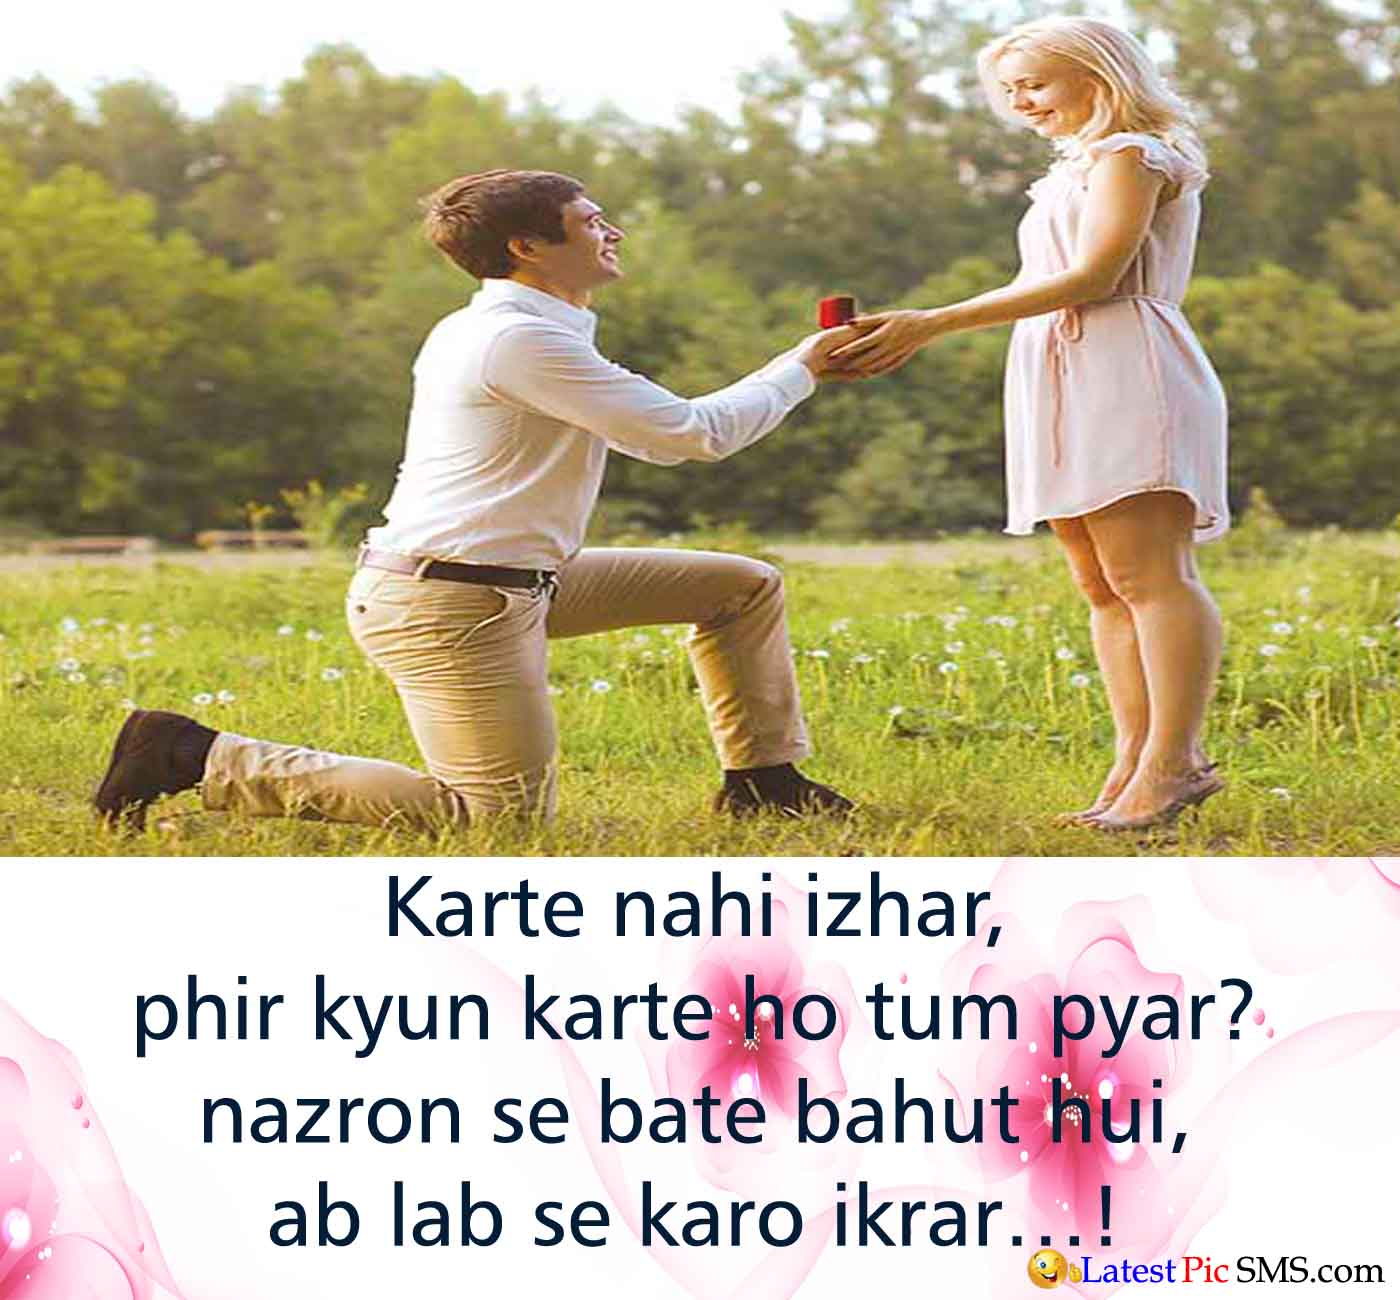 say i love you shayari - I Love you Shayari in Hindi for Whatsapp and Facebook